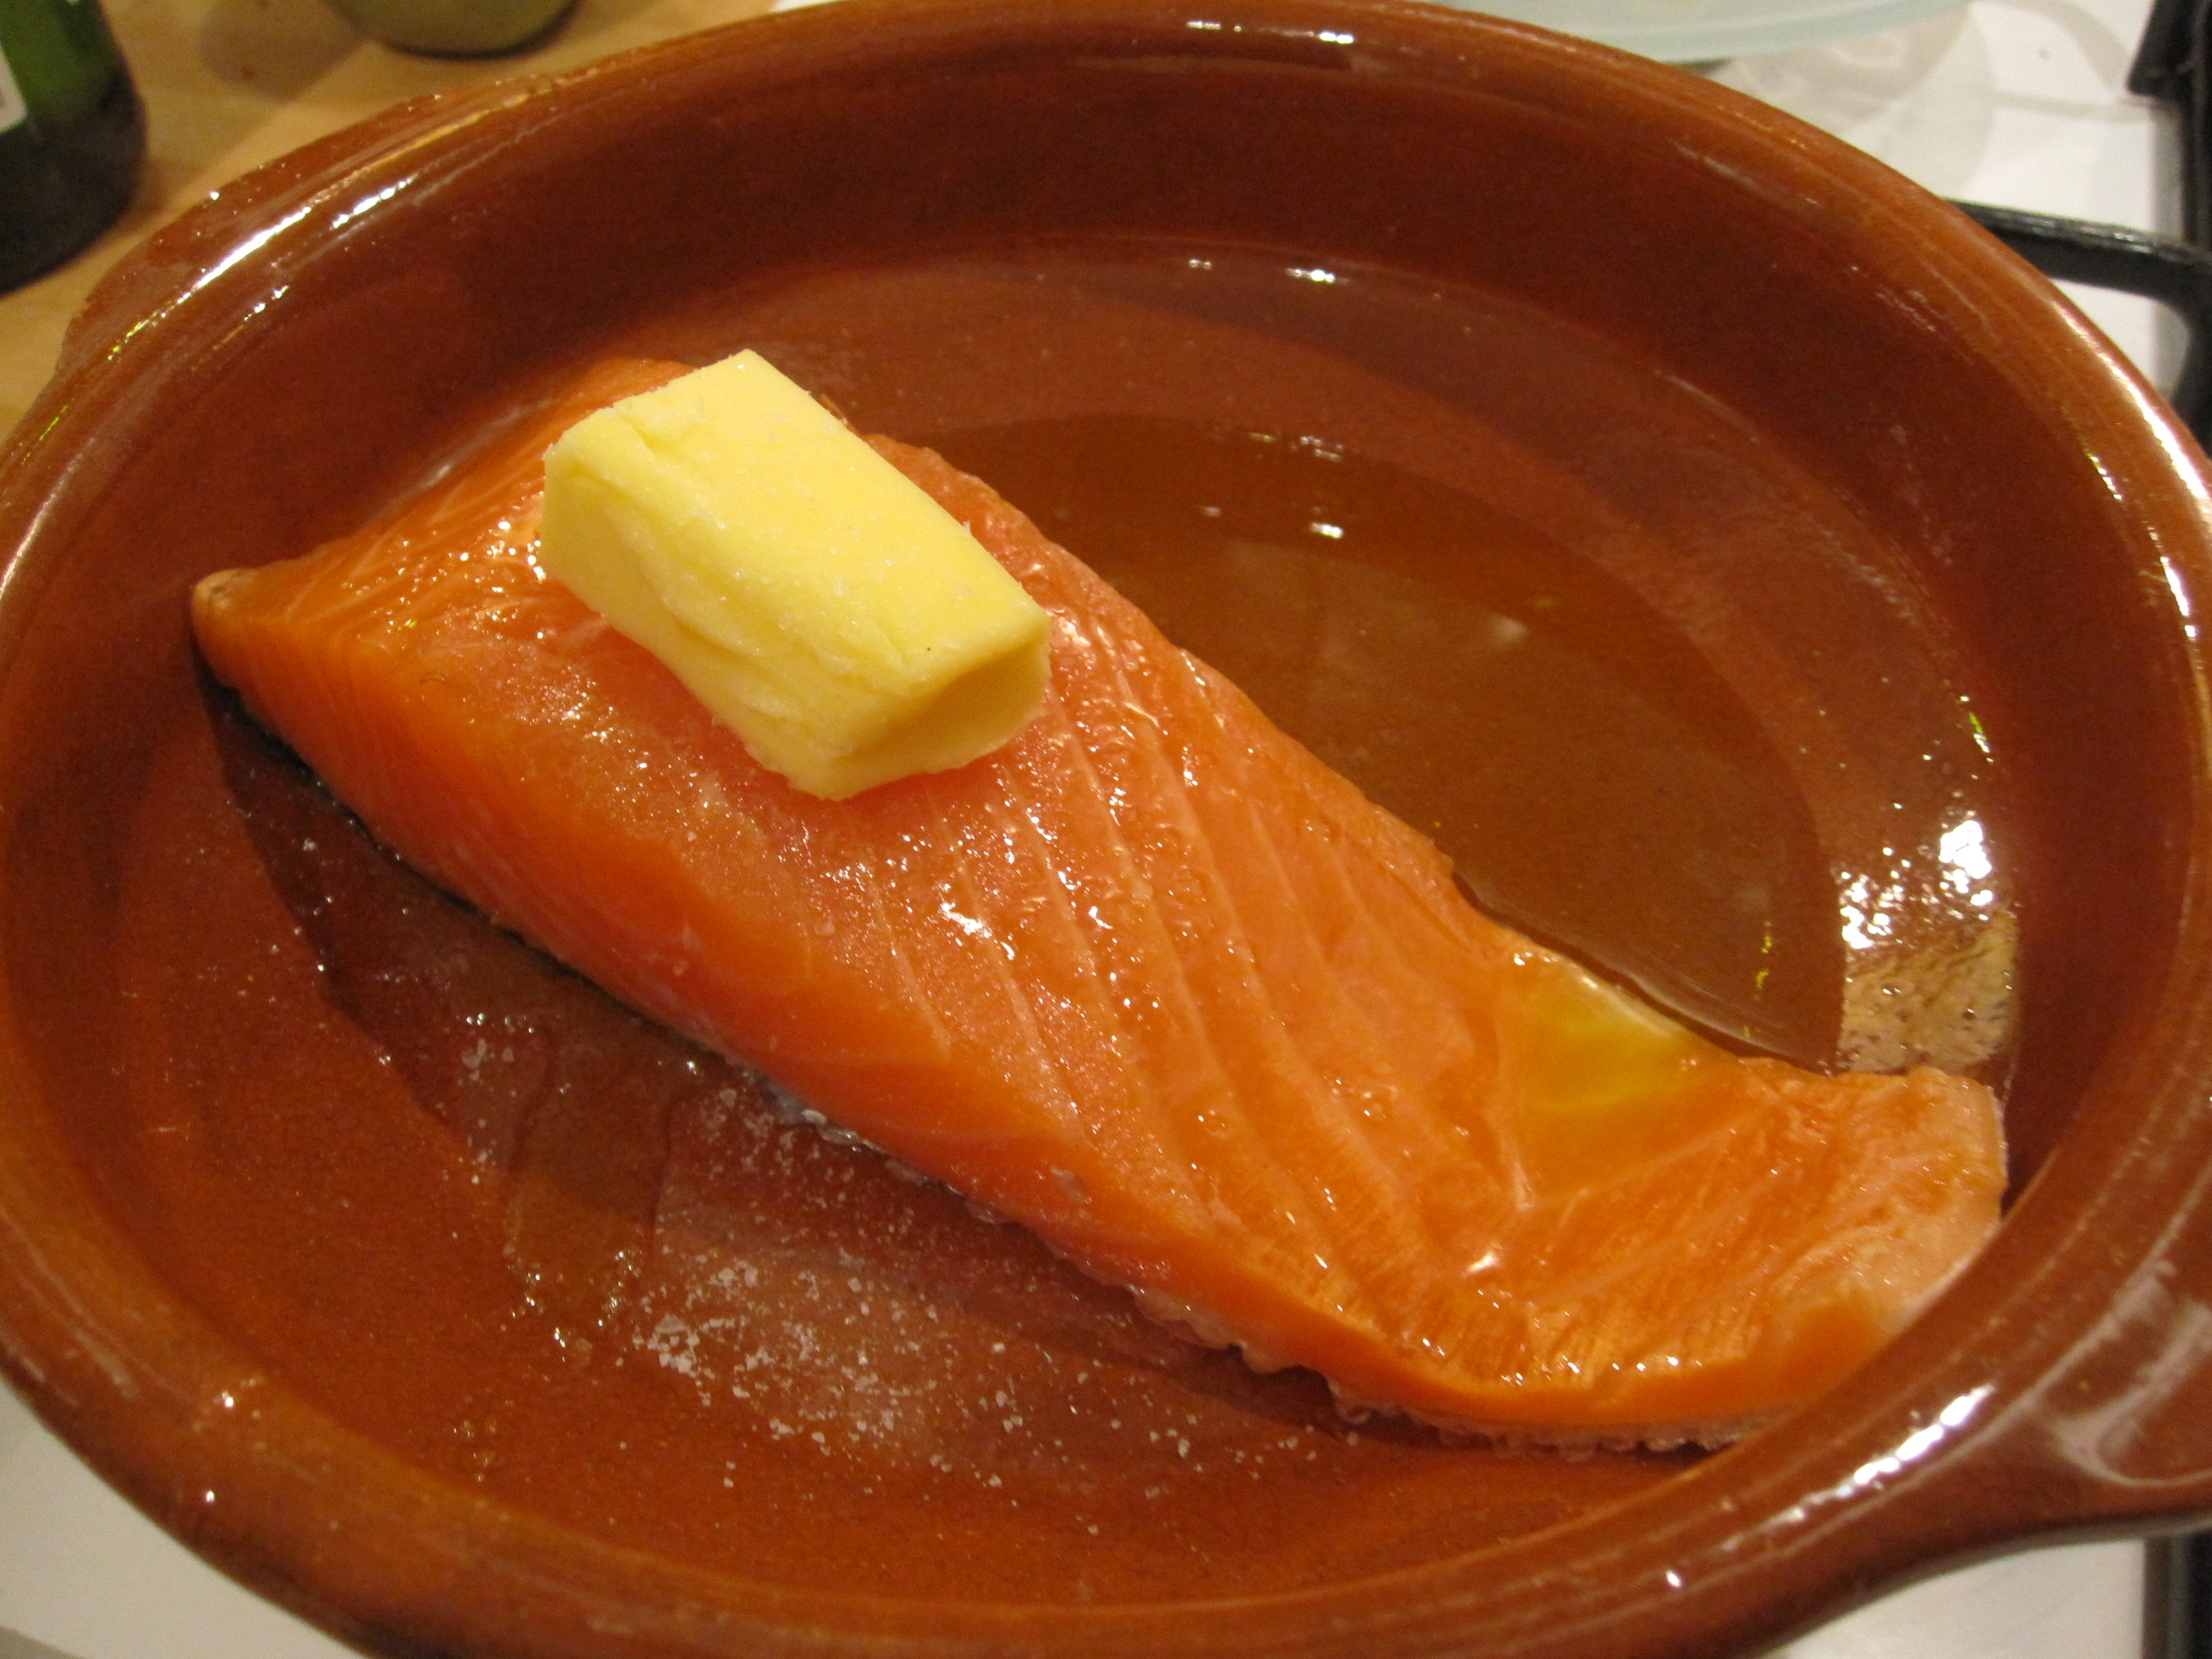 Put The Salmon In An Ovenproof Dish, Pour Over A Little Olive Oil And Smear  Round The Fish, Then Put A Knob Of Butter On The Top And Put Into A 180